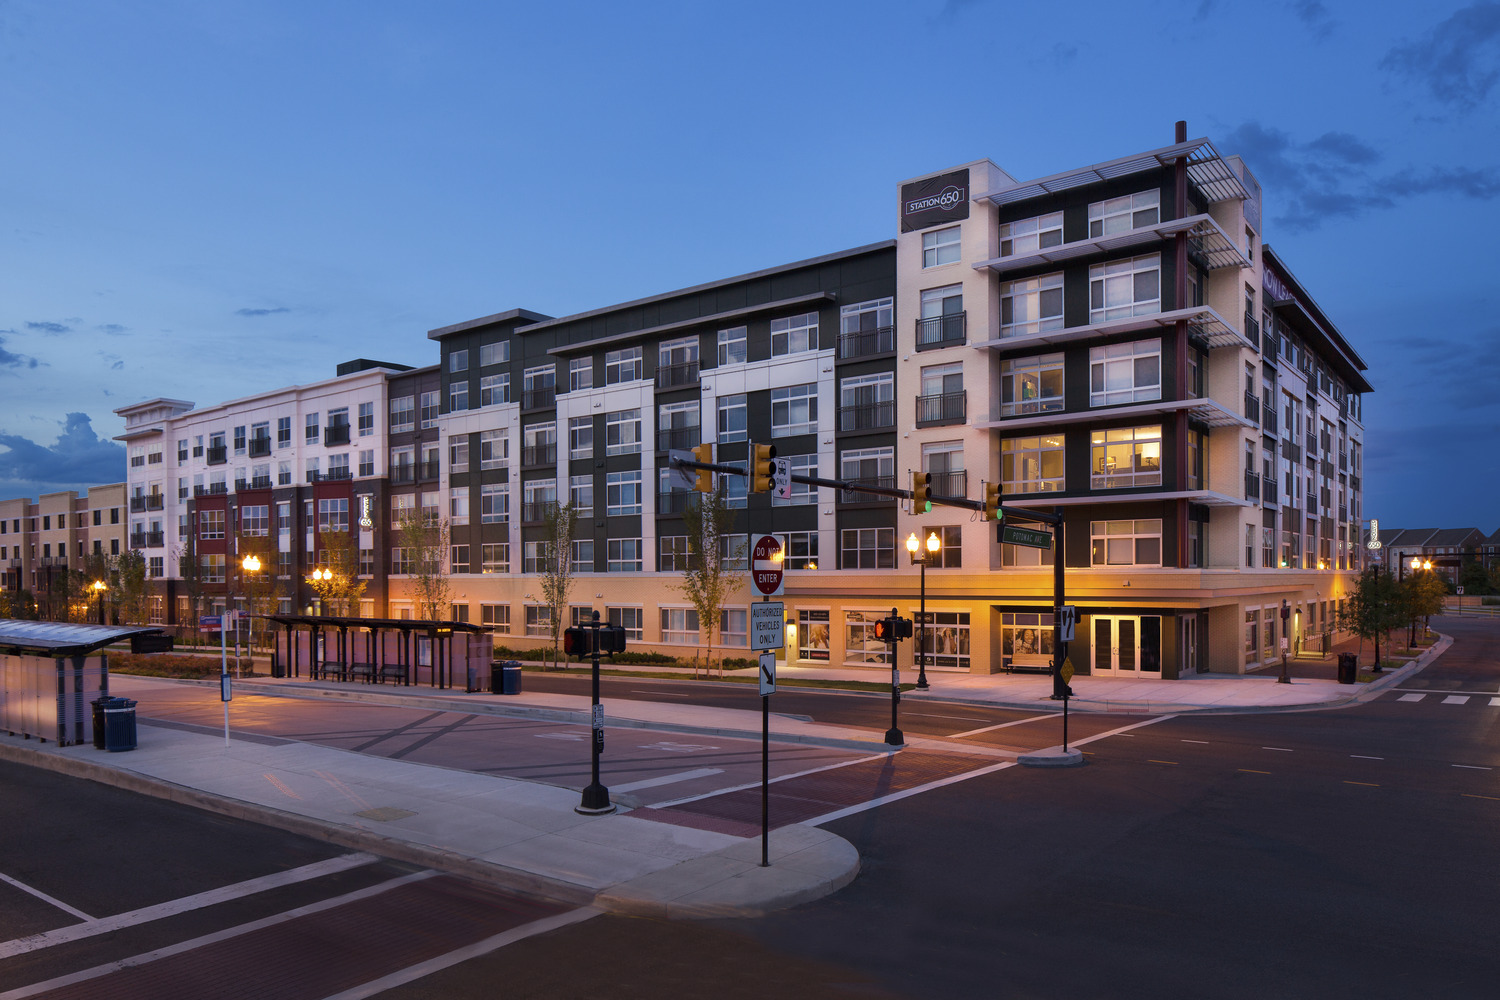 CBG builds Station 650, a 183-Unit Mixed-Use Apartment Building with Below-Grade Parking in Alexandria, VA - Image #2